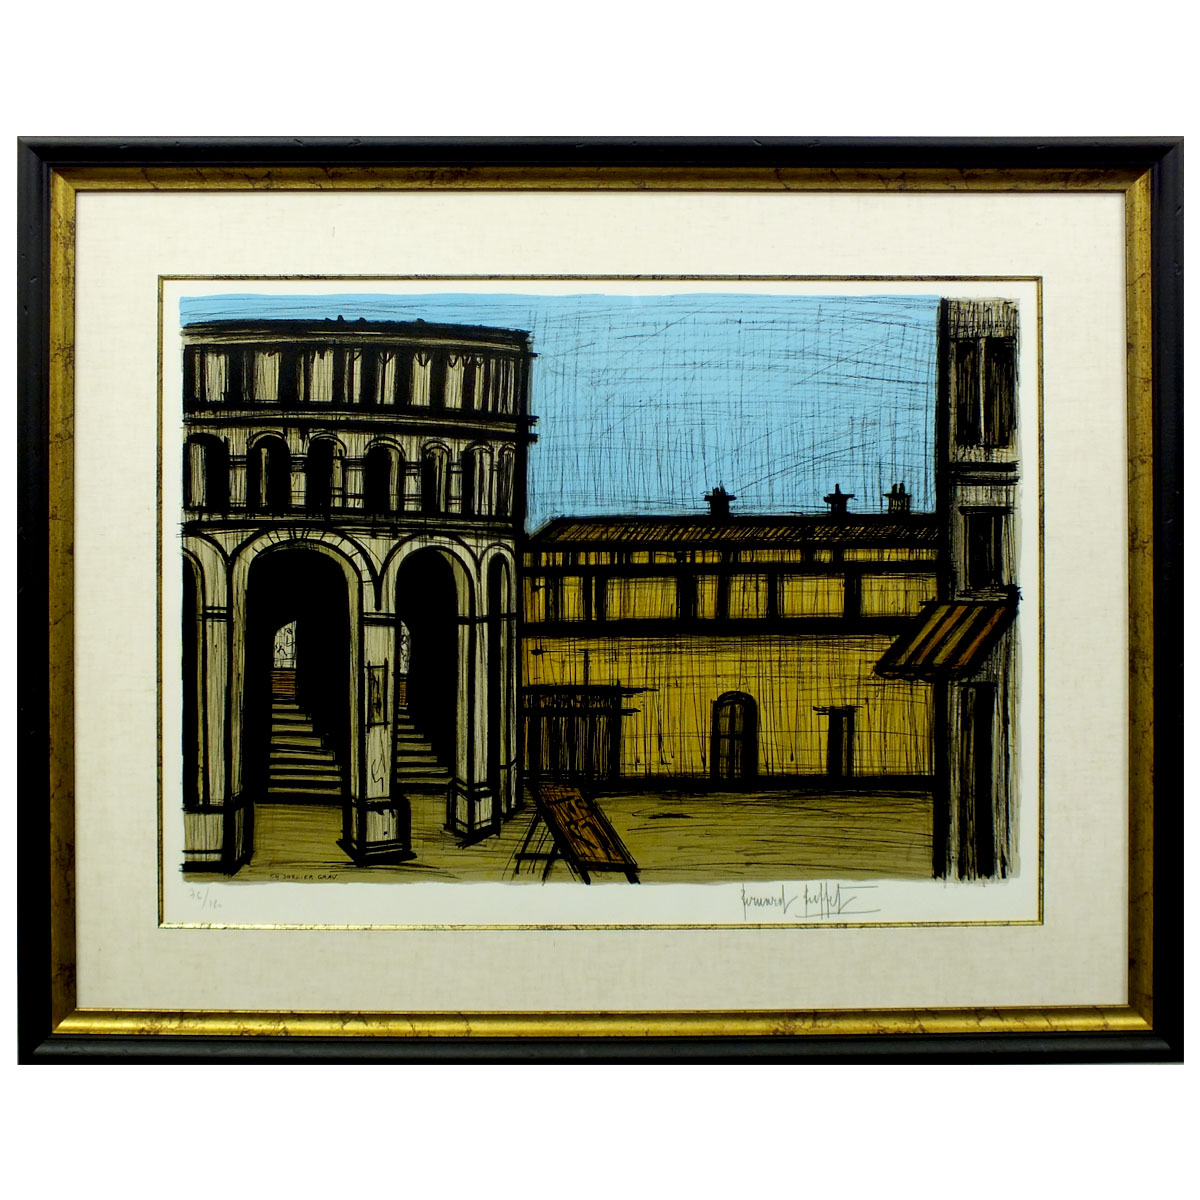 Astounding Reduction In Price Negotiability Article Bernard Buffet Circle Arena Than Carmen Amount Of Paysage Person Signature New Article Picture Print Home Interior And Landscaping Ferensignezvosmurscom